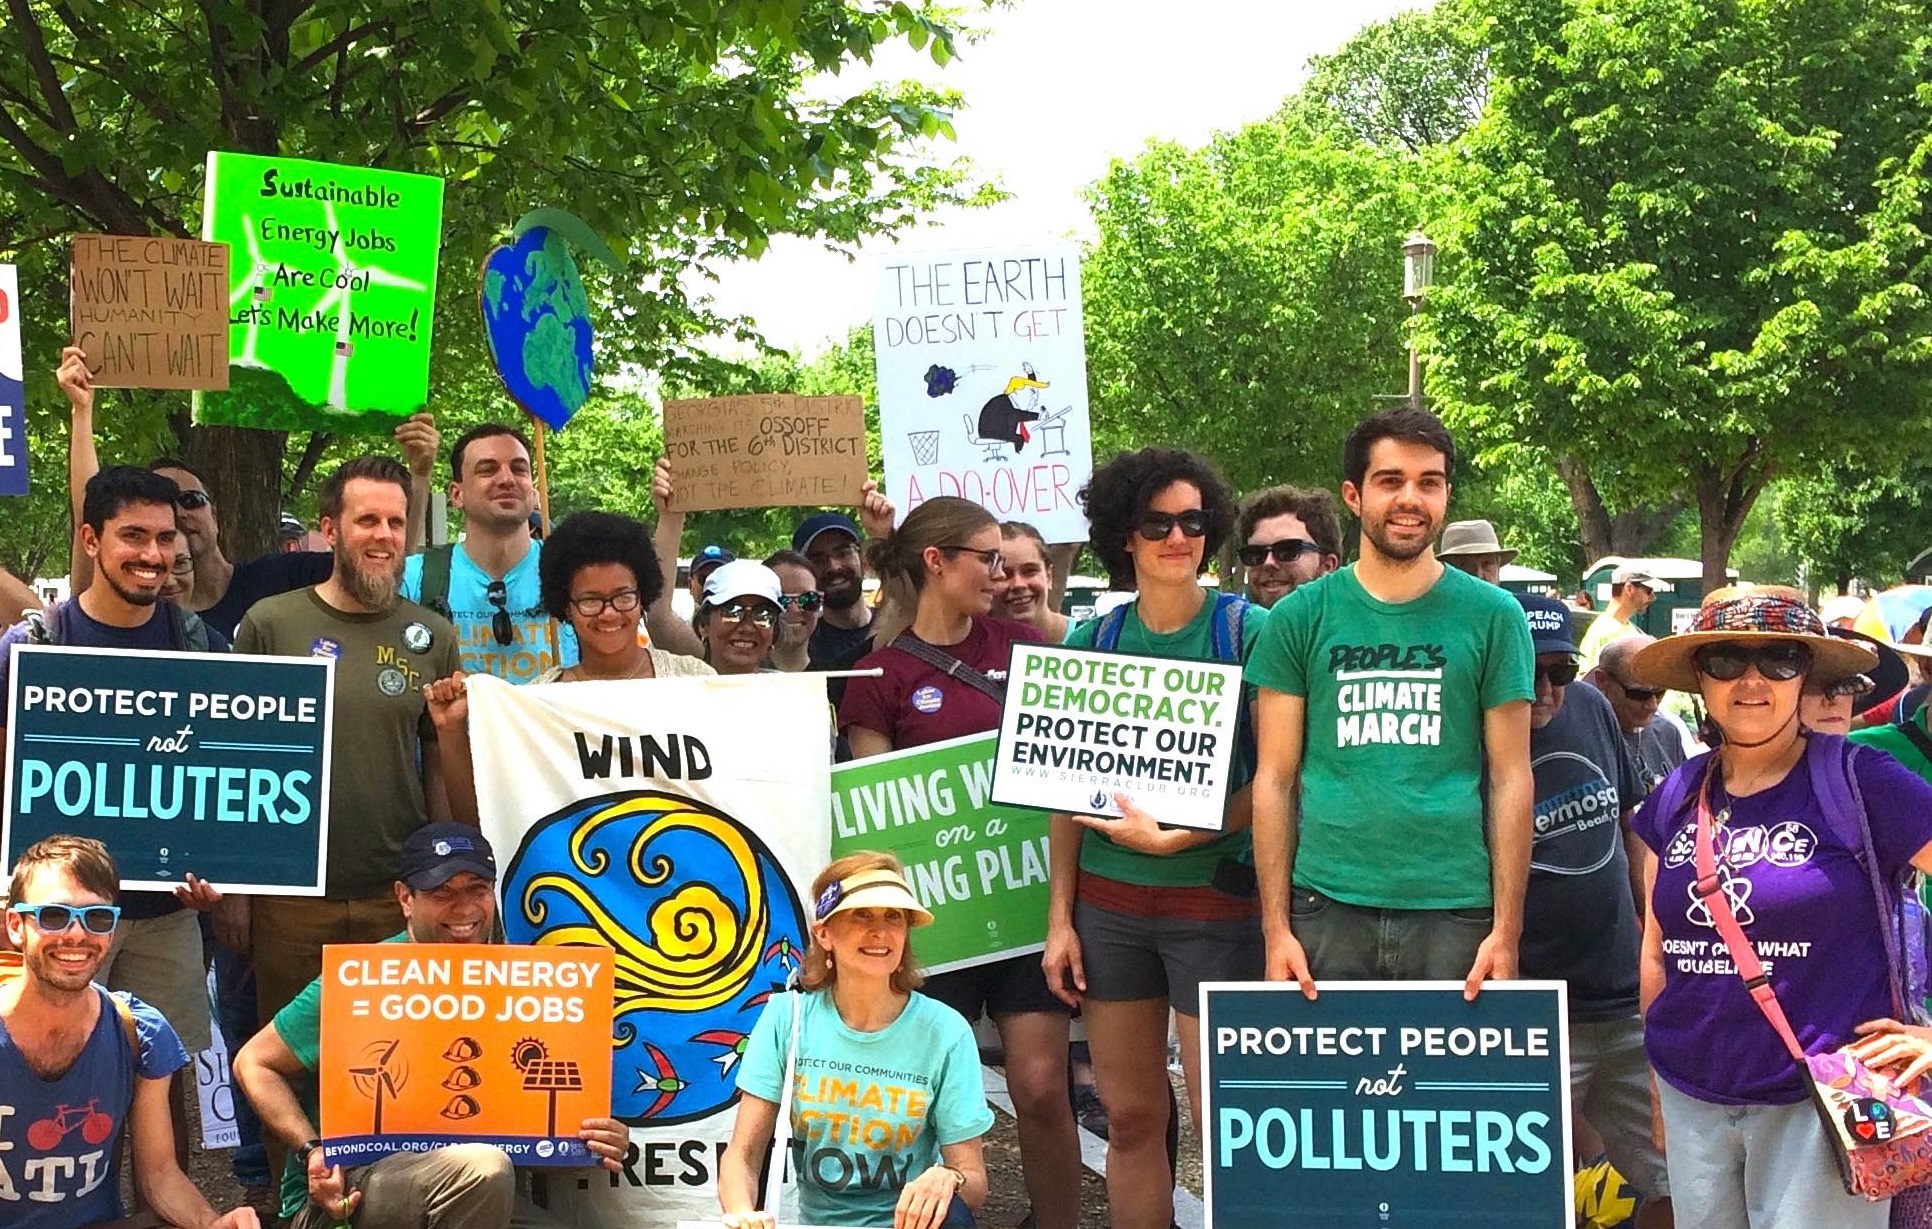 A diverse group of Sierra Club activists holding signs in support of clean energy solutions.